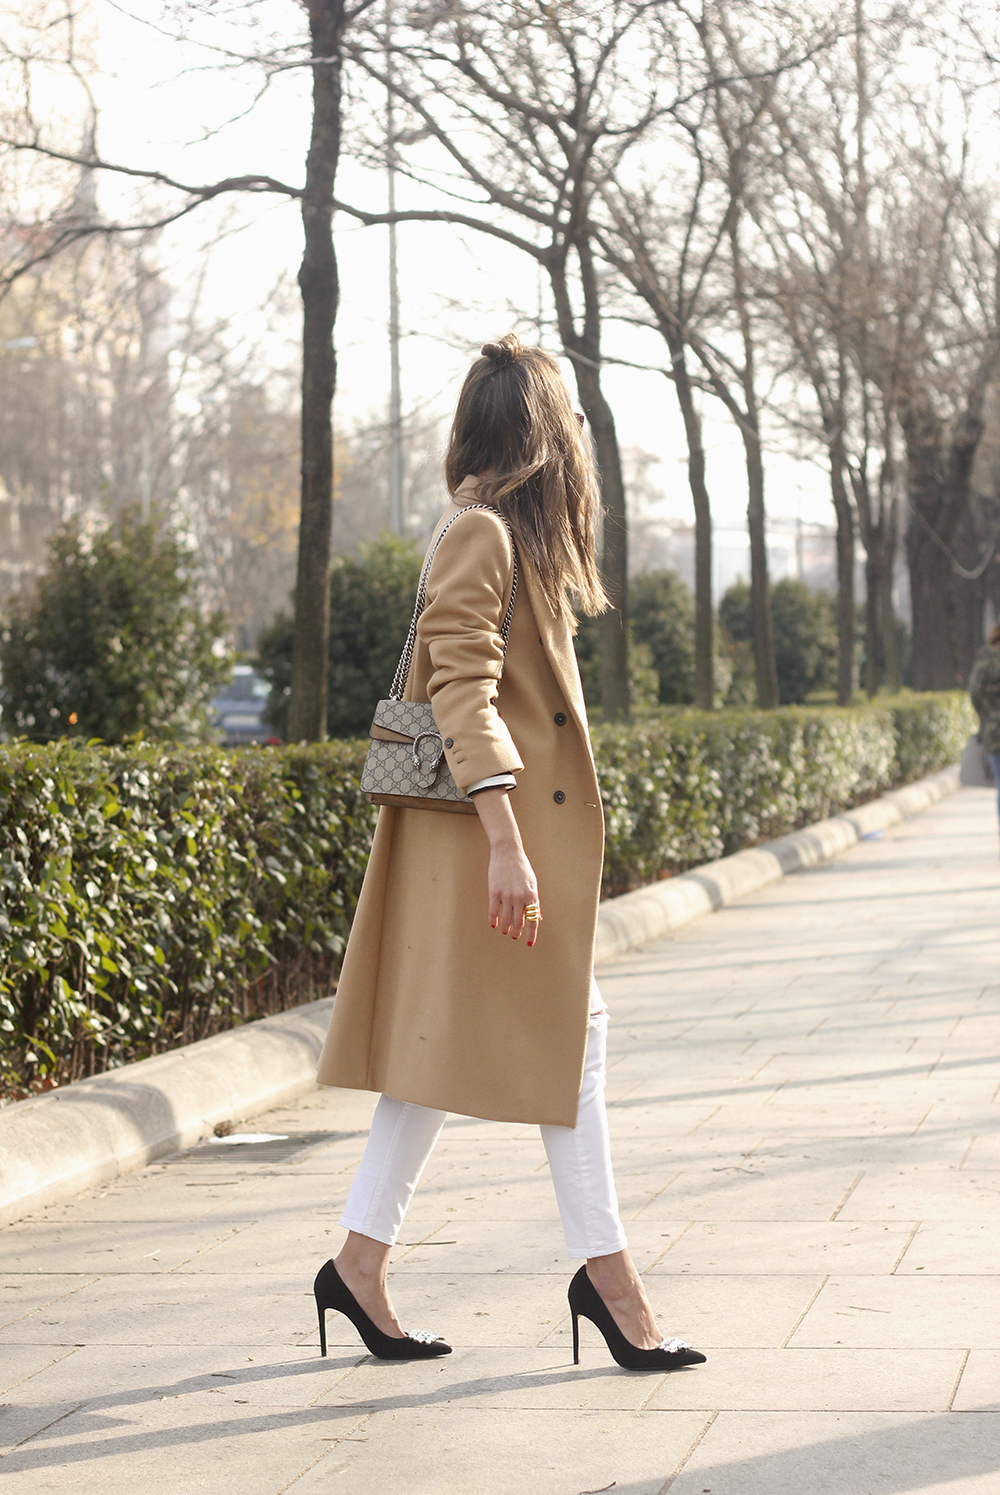 camel coat strieps white ripped jeans black heels uterqüe belt gucci céline sunnies outfit fashion style08